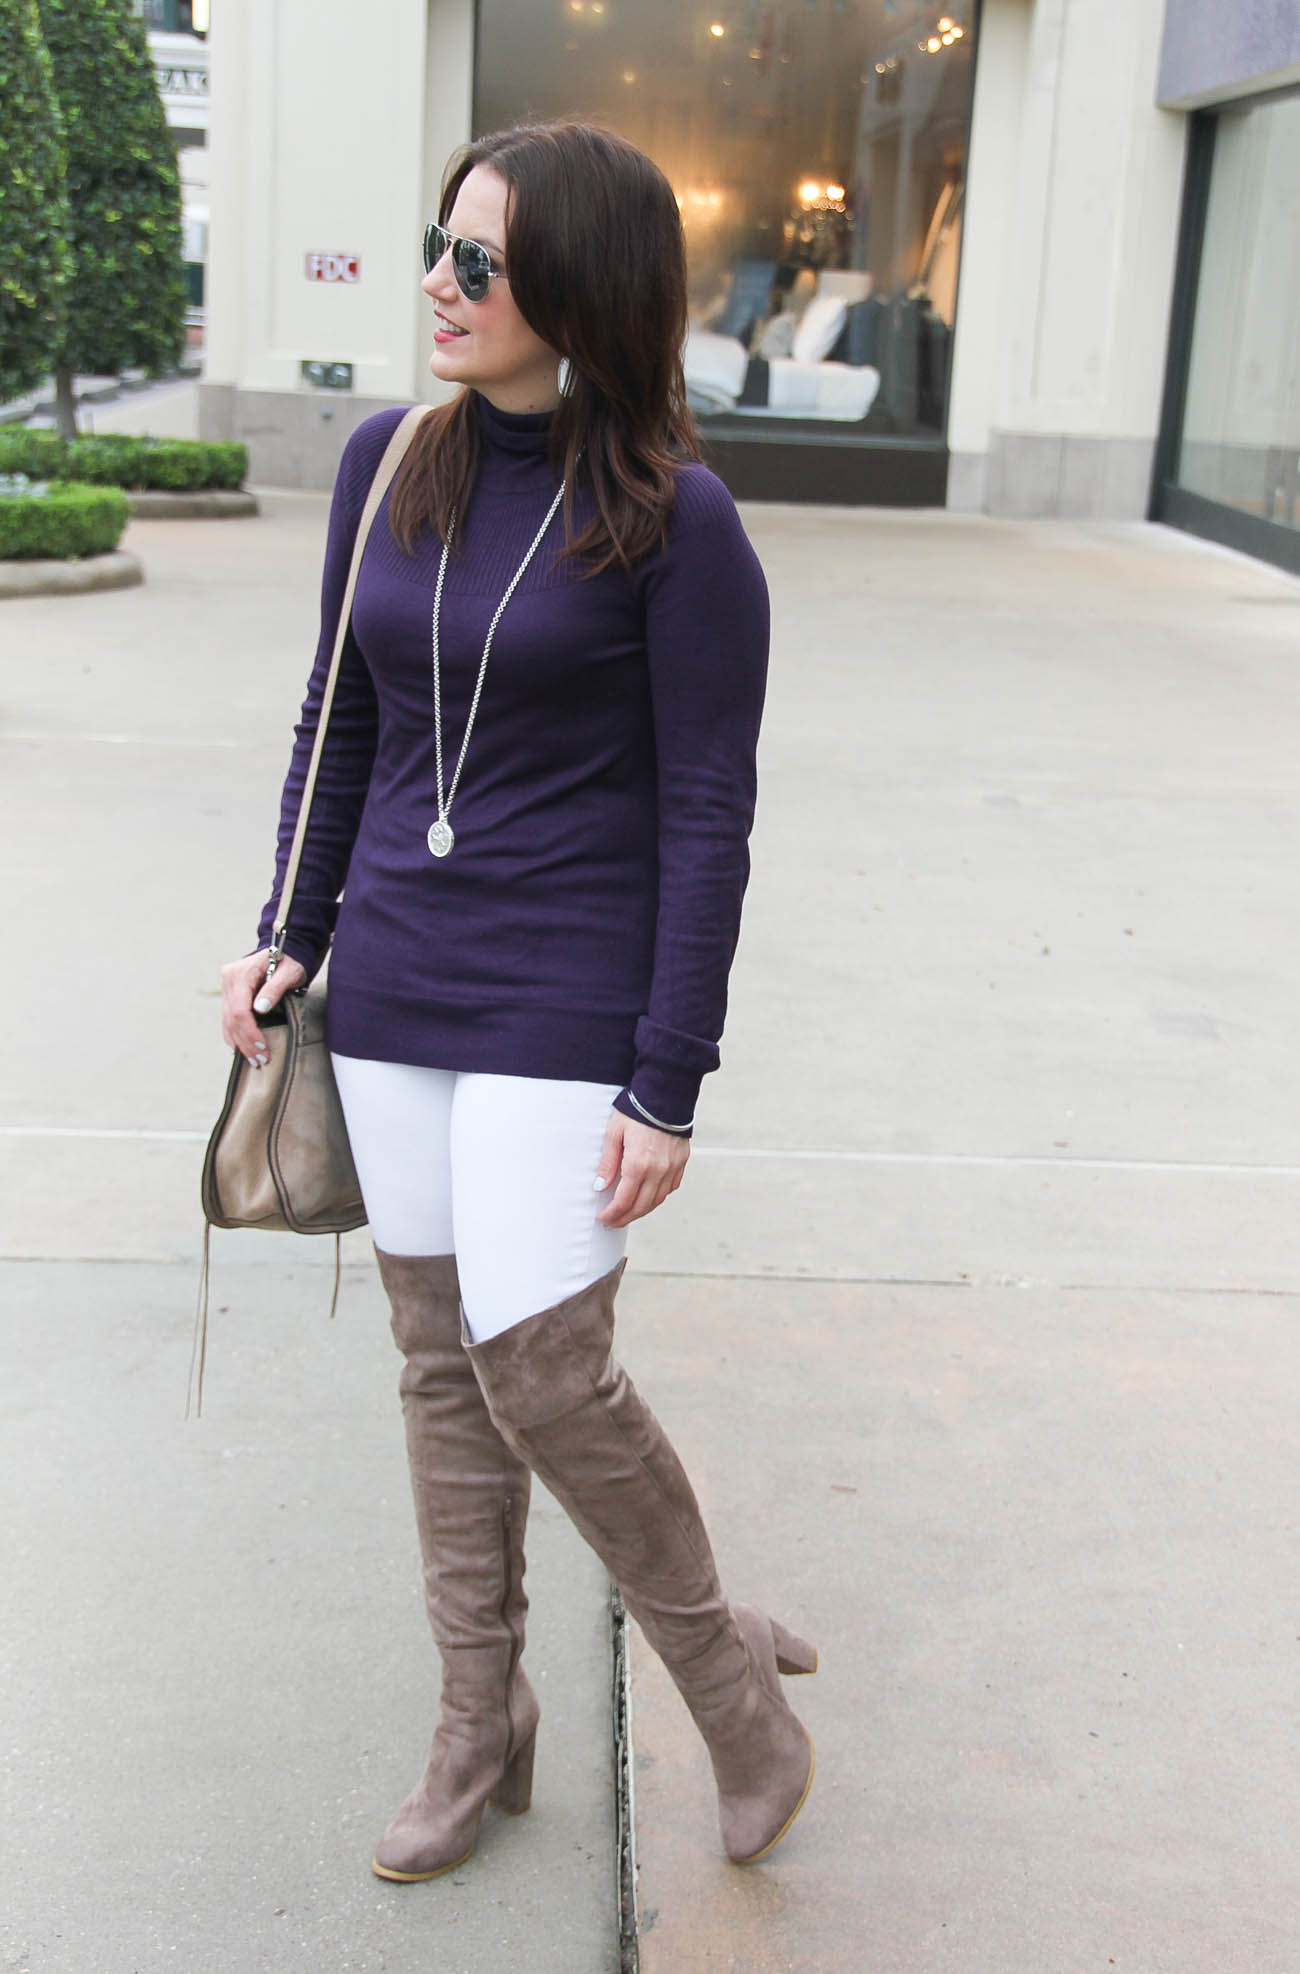 How to Wear Over the Knee Boots When You're Short